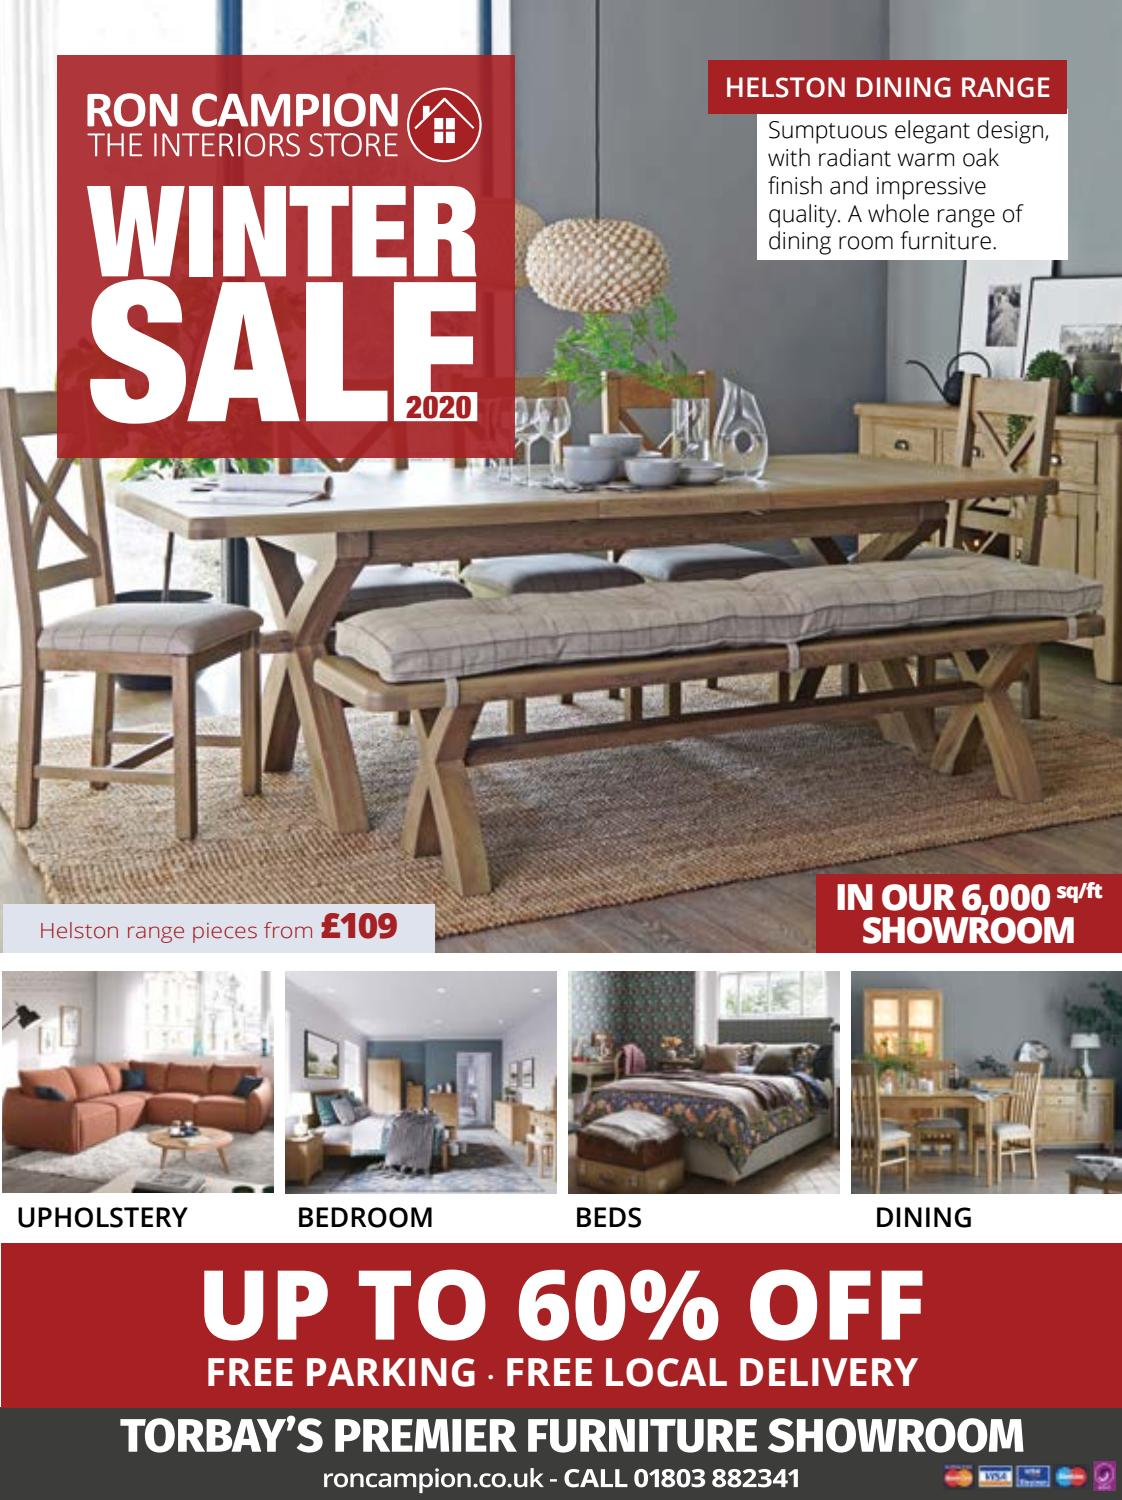 Ron Campion Winter Sale 2020 Brochure By Ron Campion Furnishers Issuu